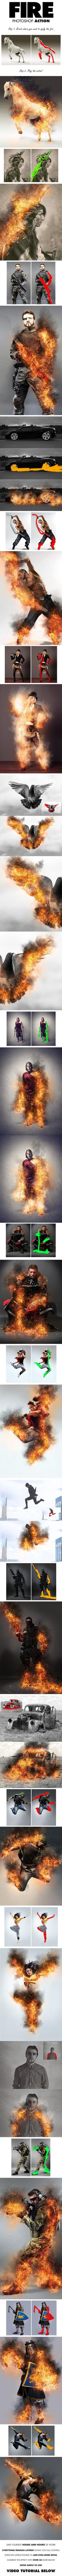 Sevenstyles Best Burning Fire Photoshop Action